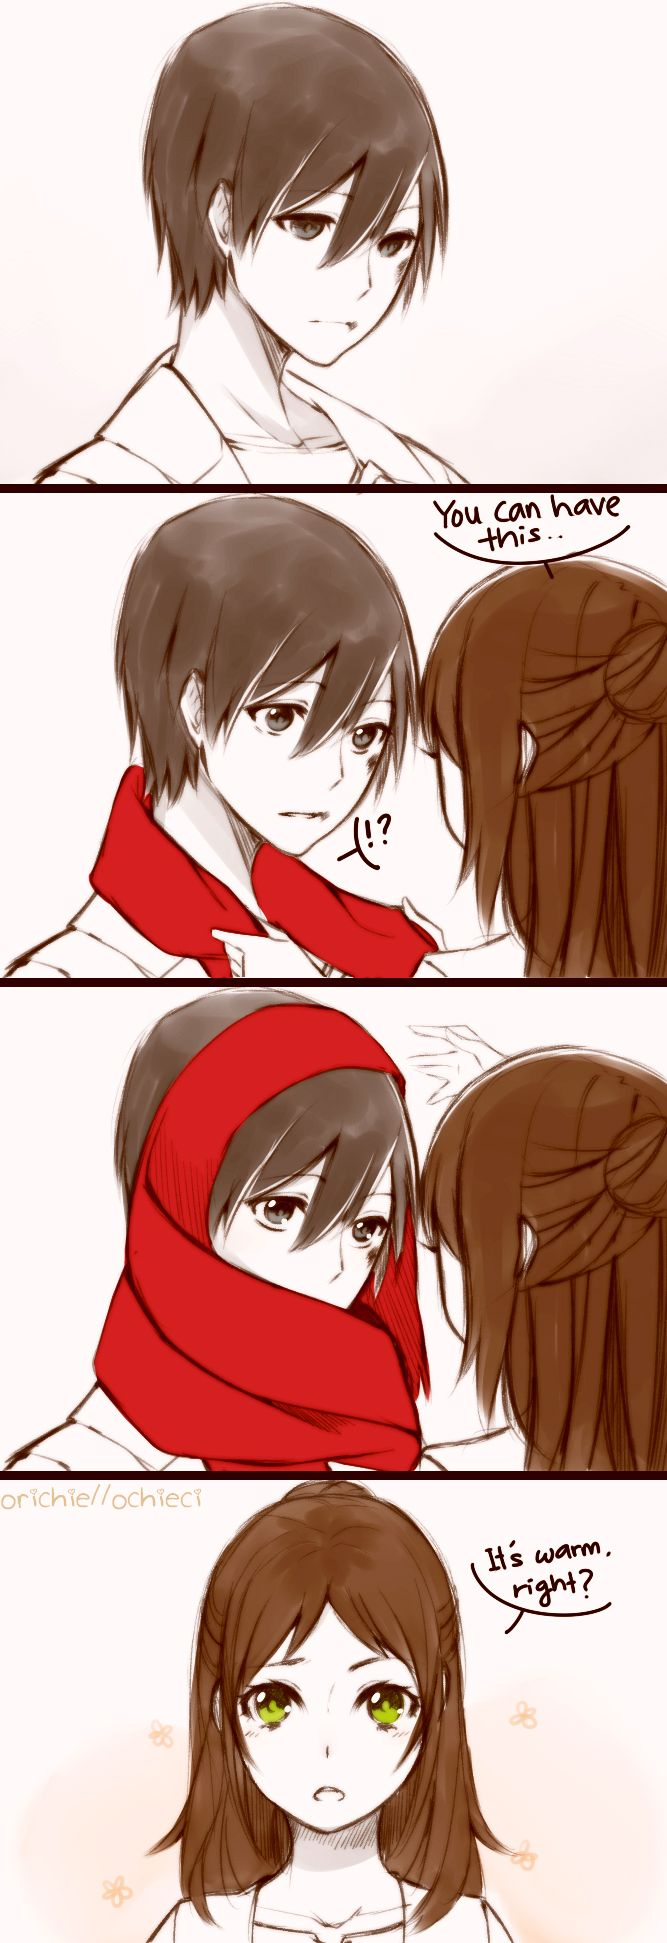 Eren x Mikasa (gender bender) - SNK Attack On Titan